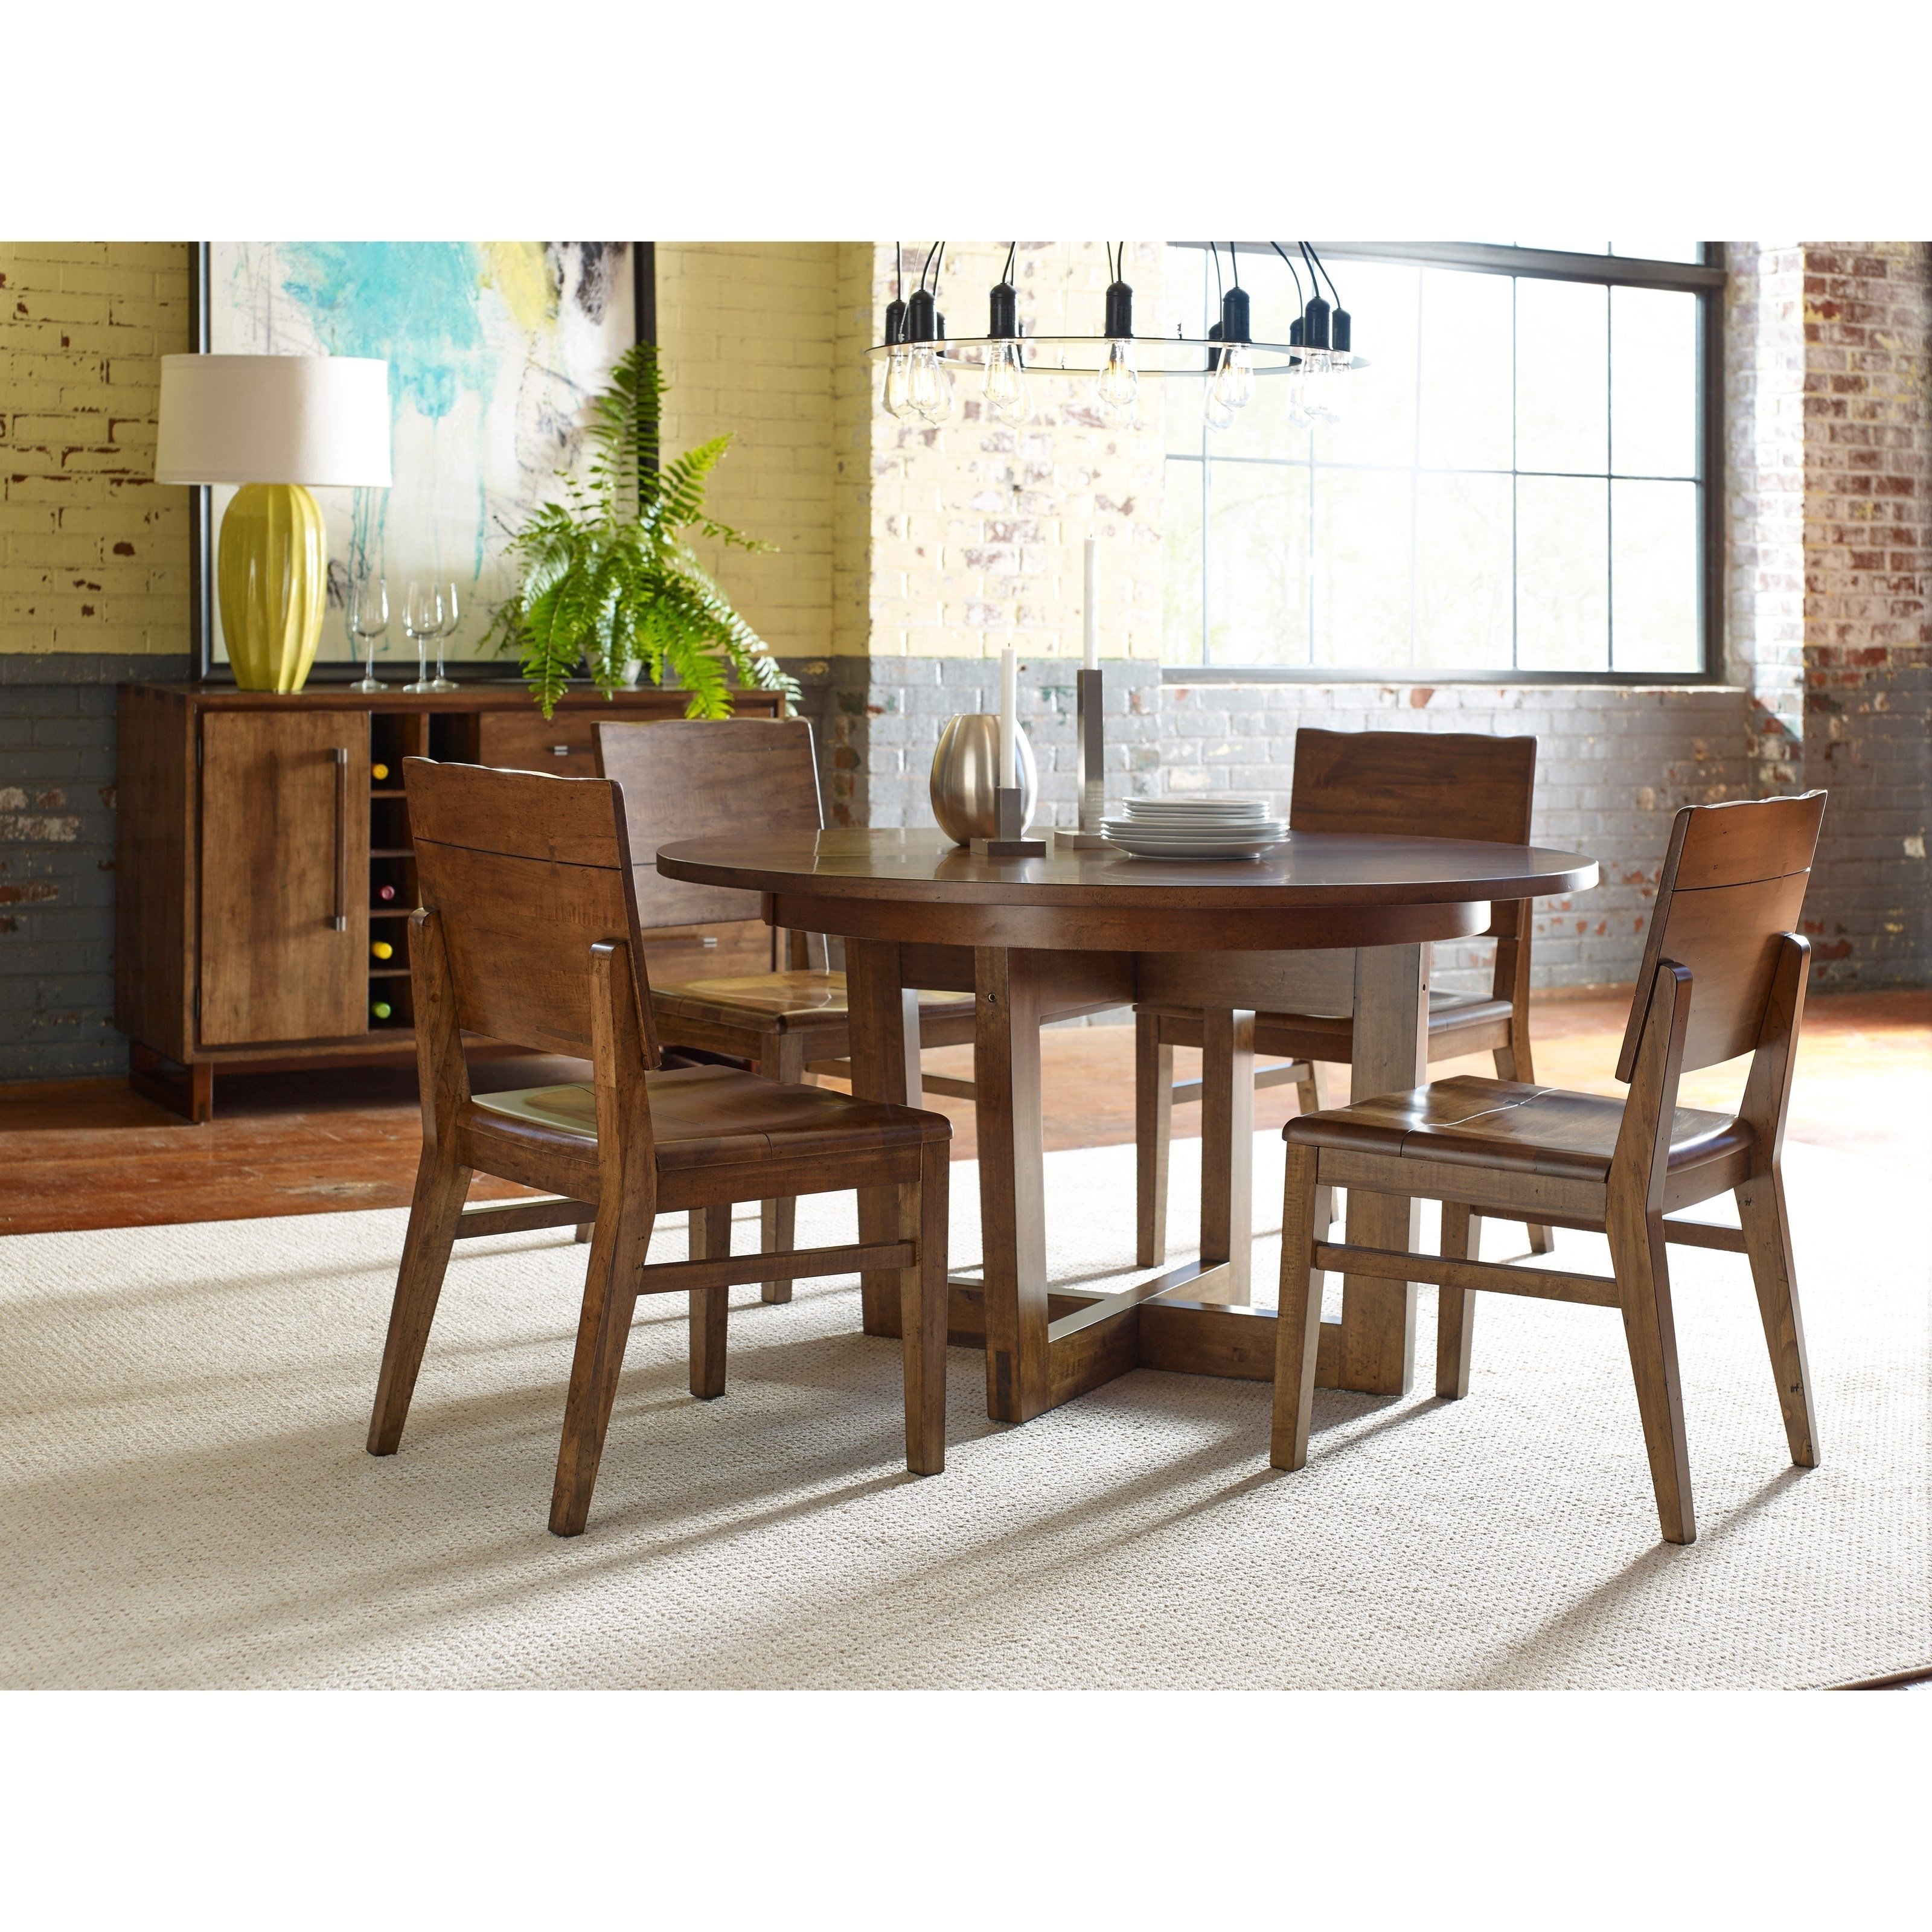 """Blacksmith Modern Craftsman 54"""" Round Dining Table With Extension Regarding Current Craftsman Round Dining Tables (View 2 of 25)"""